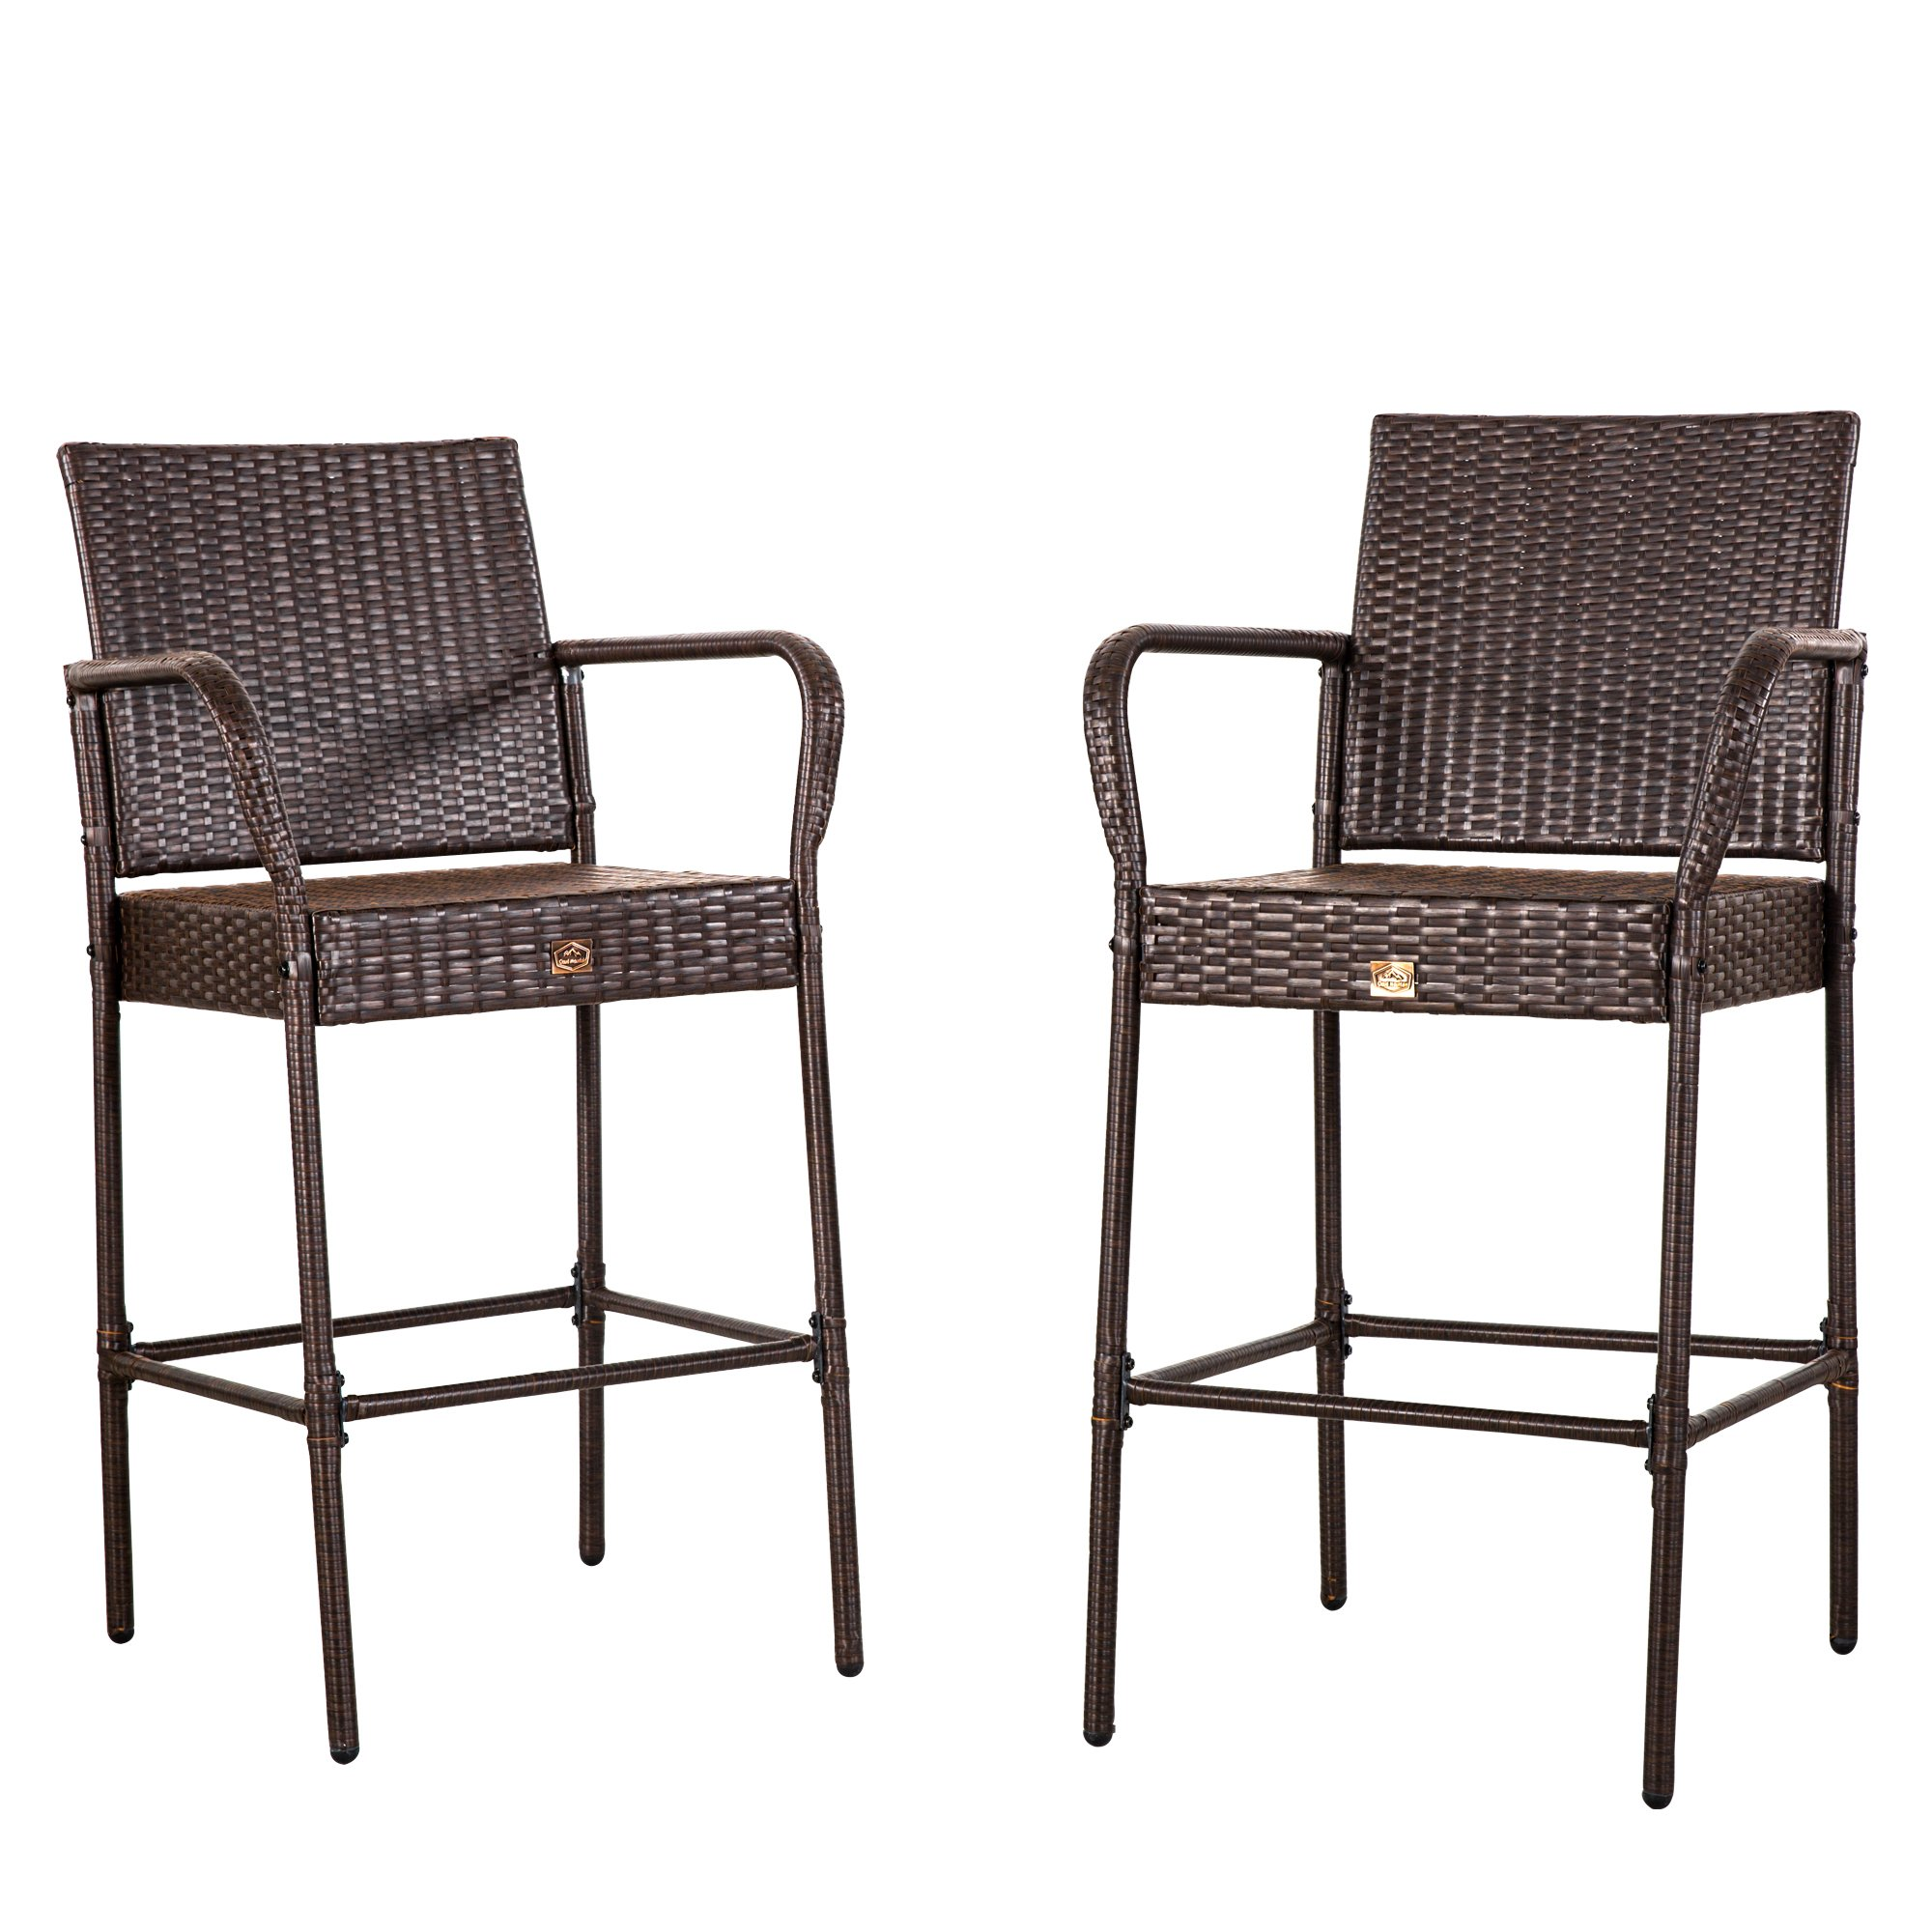 Cloud Mountain No Tax Set of 2 Outdoor Wicker Rattan Bar Stool Outdoor Patio Furniture Bar Stools Chairs Club Chair Patio Dining Chairs, Brown